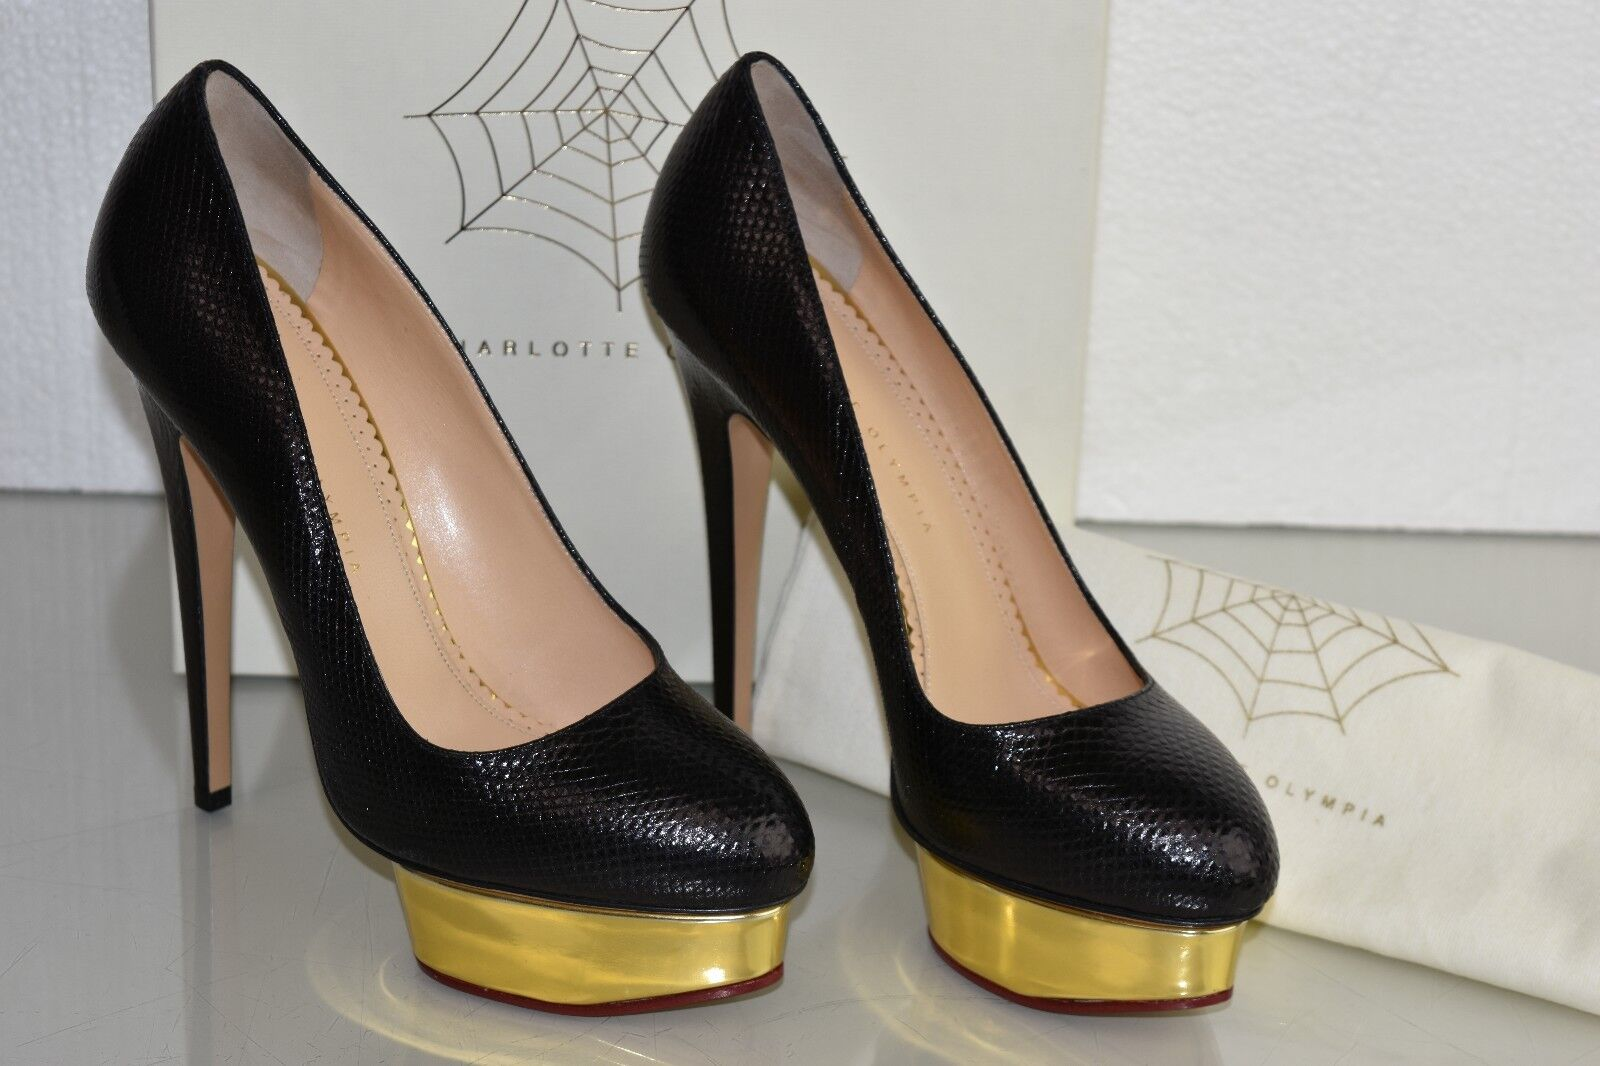 1295 New Charlotte Olympia DOLLY EXOTIC Karung Platform Black Pump shoes 39 41